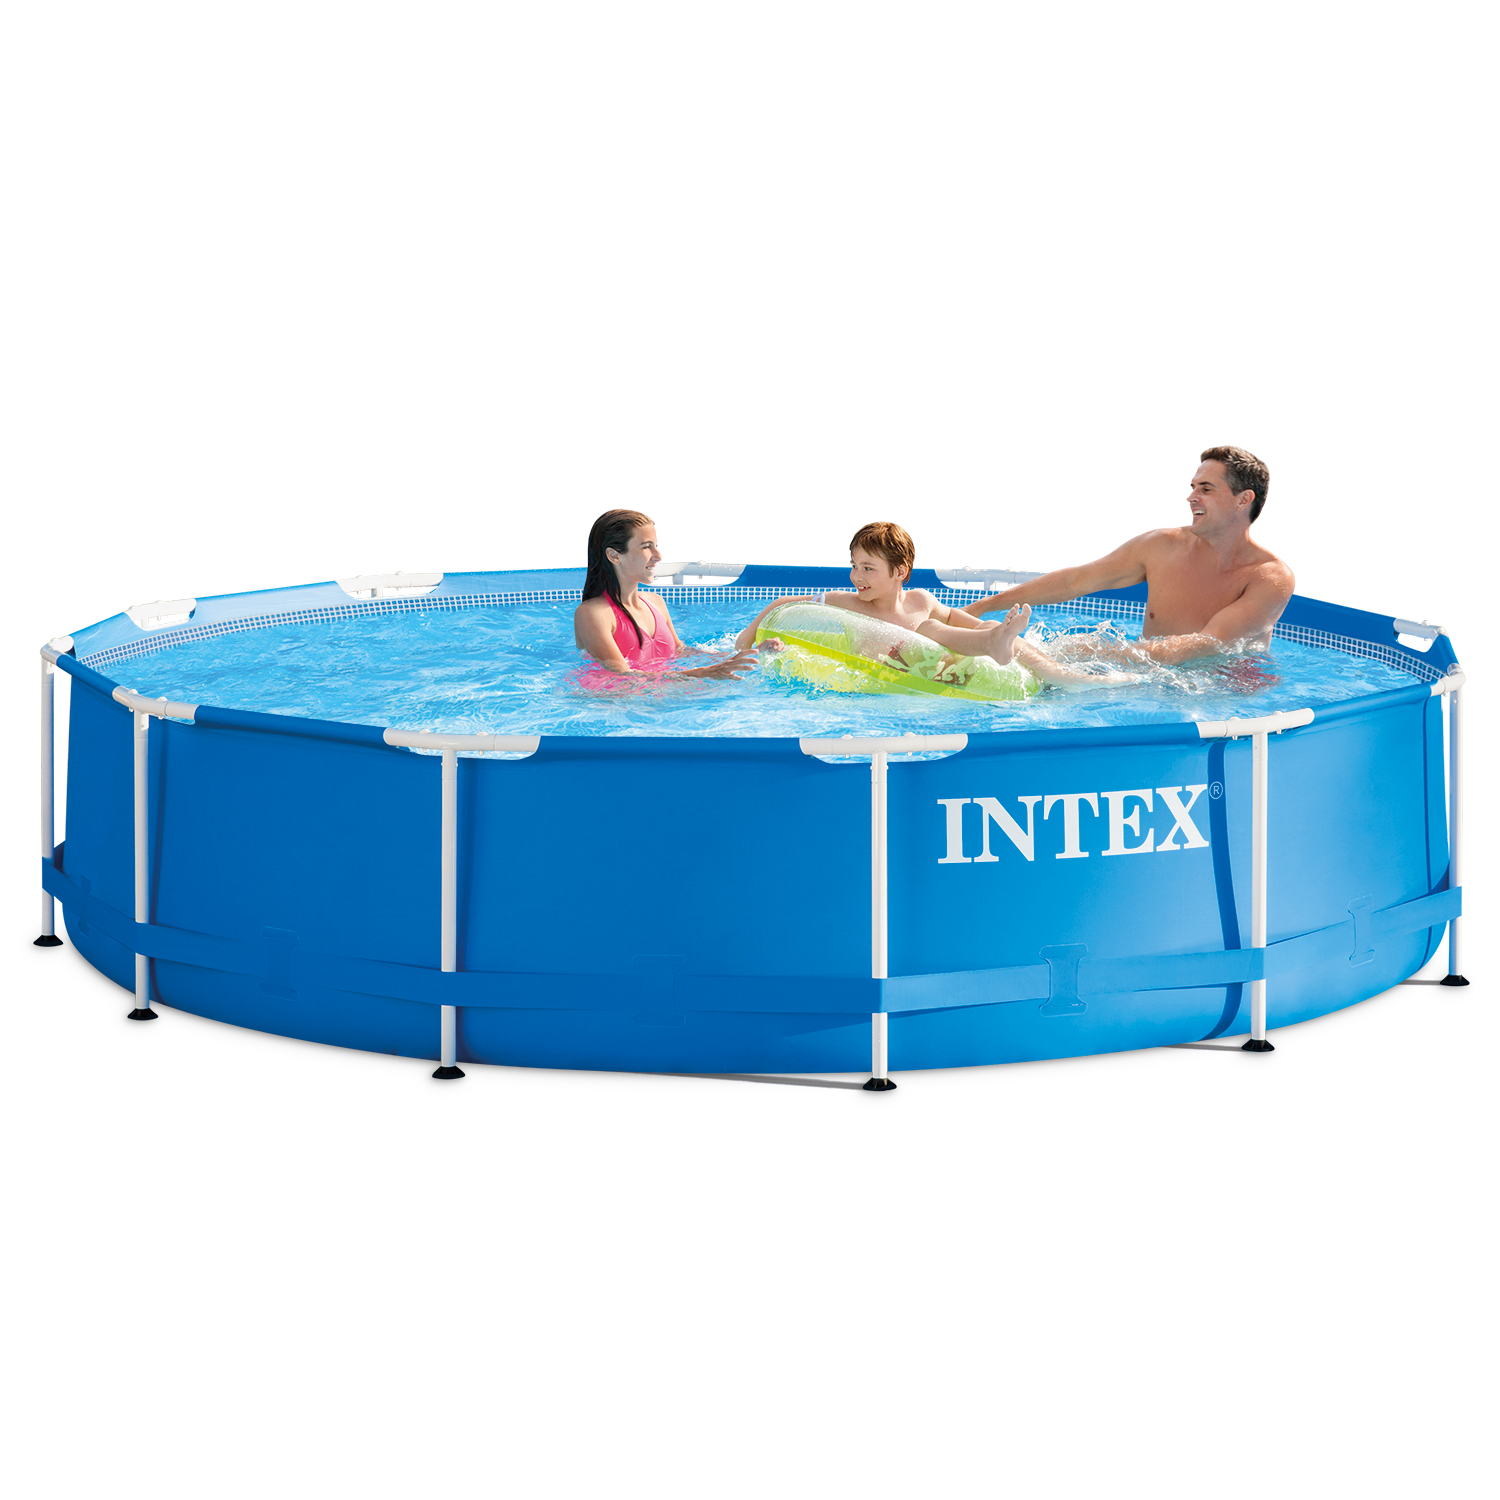 Intex 12x30-Feet Metal Frame Swimming Pool with Filter Pump